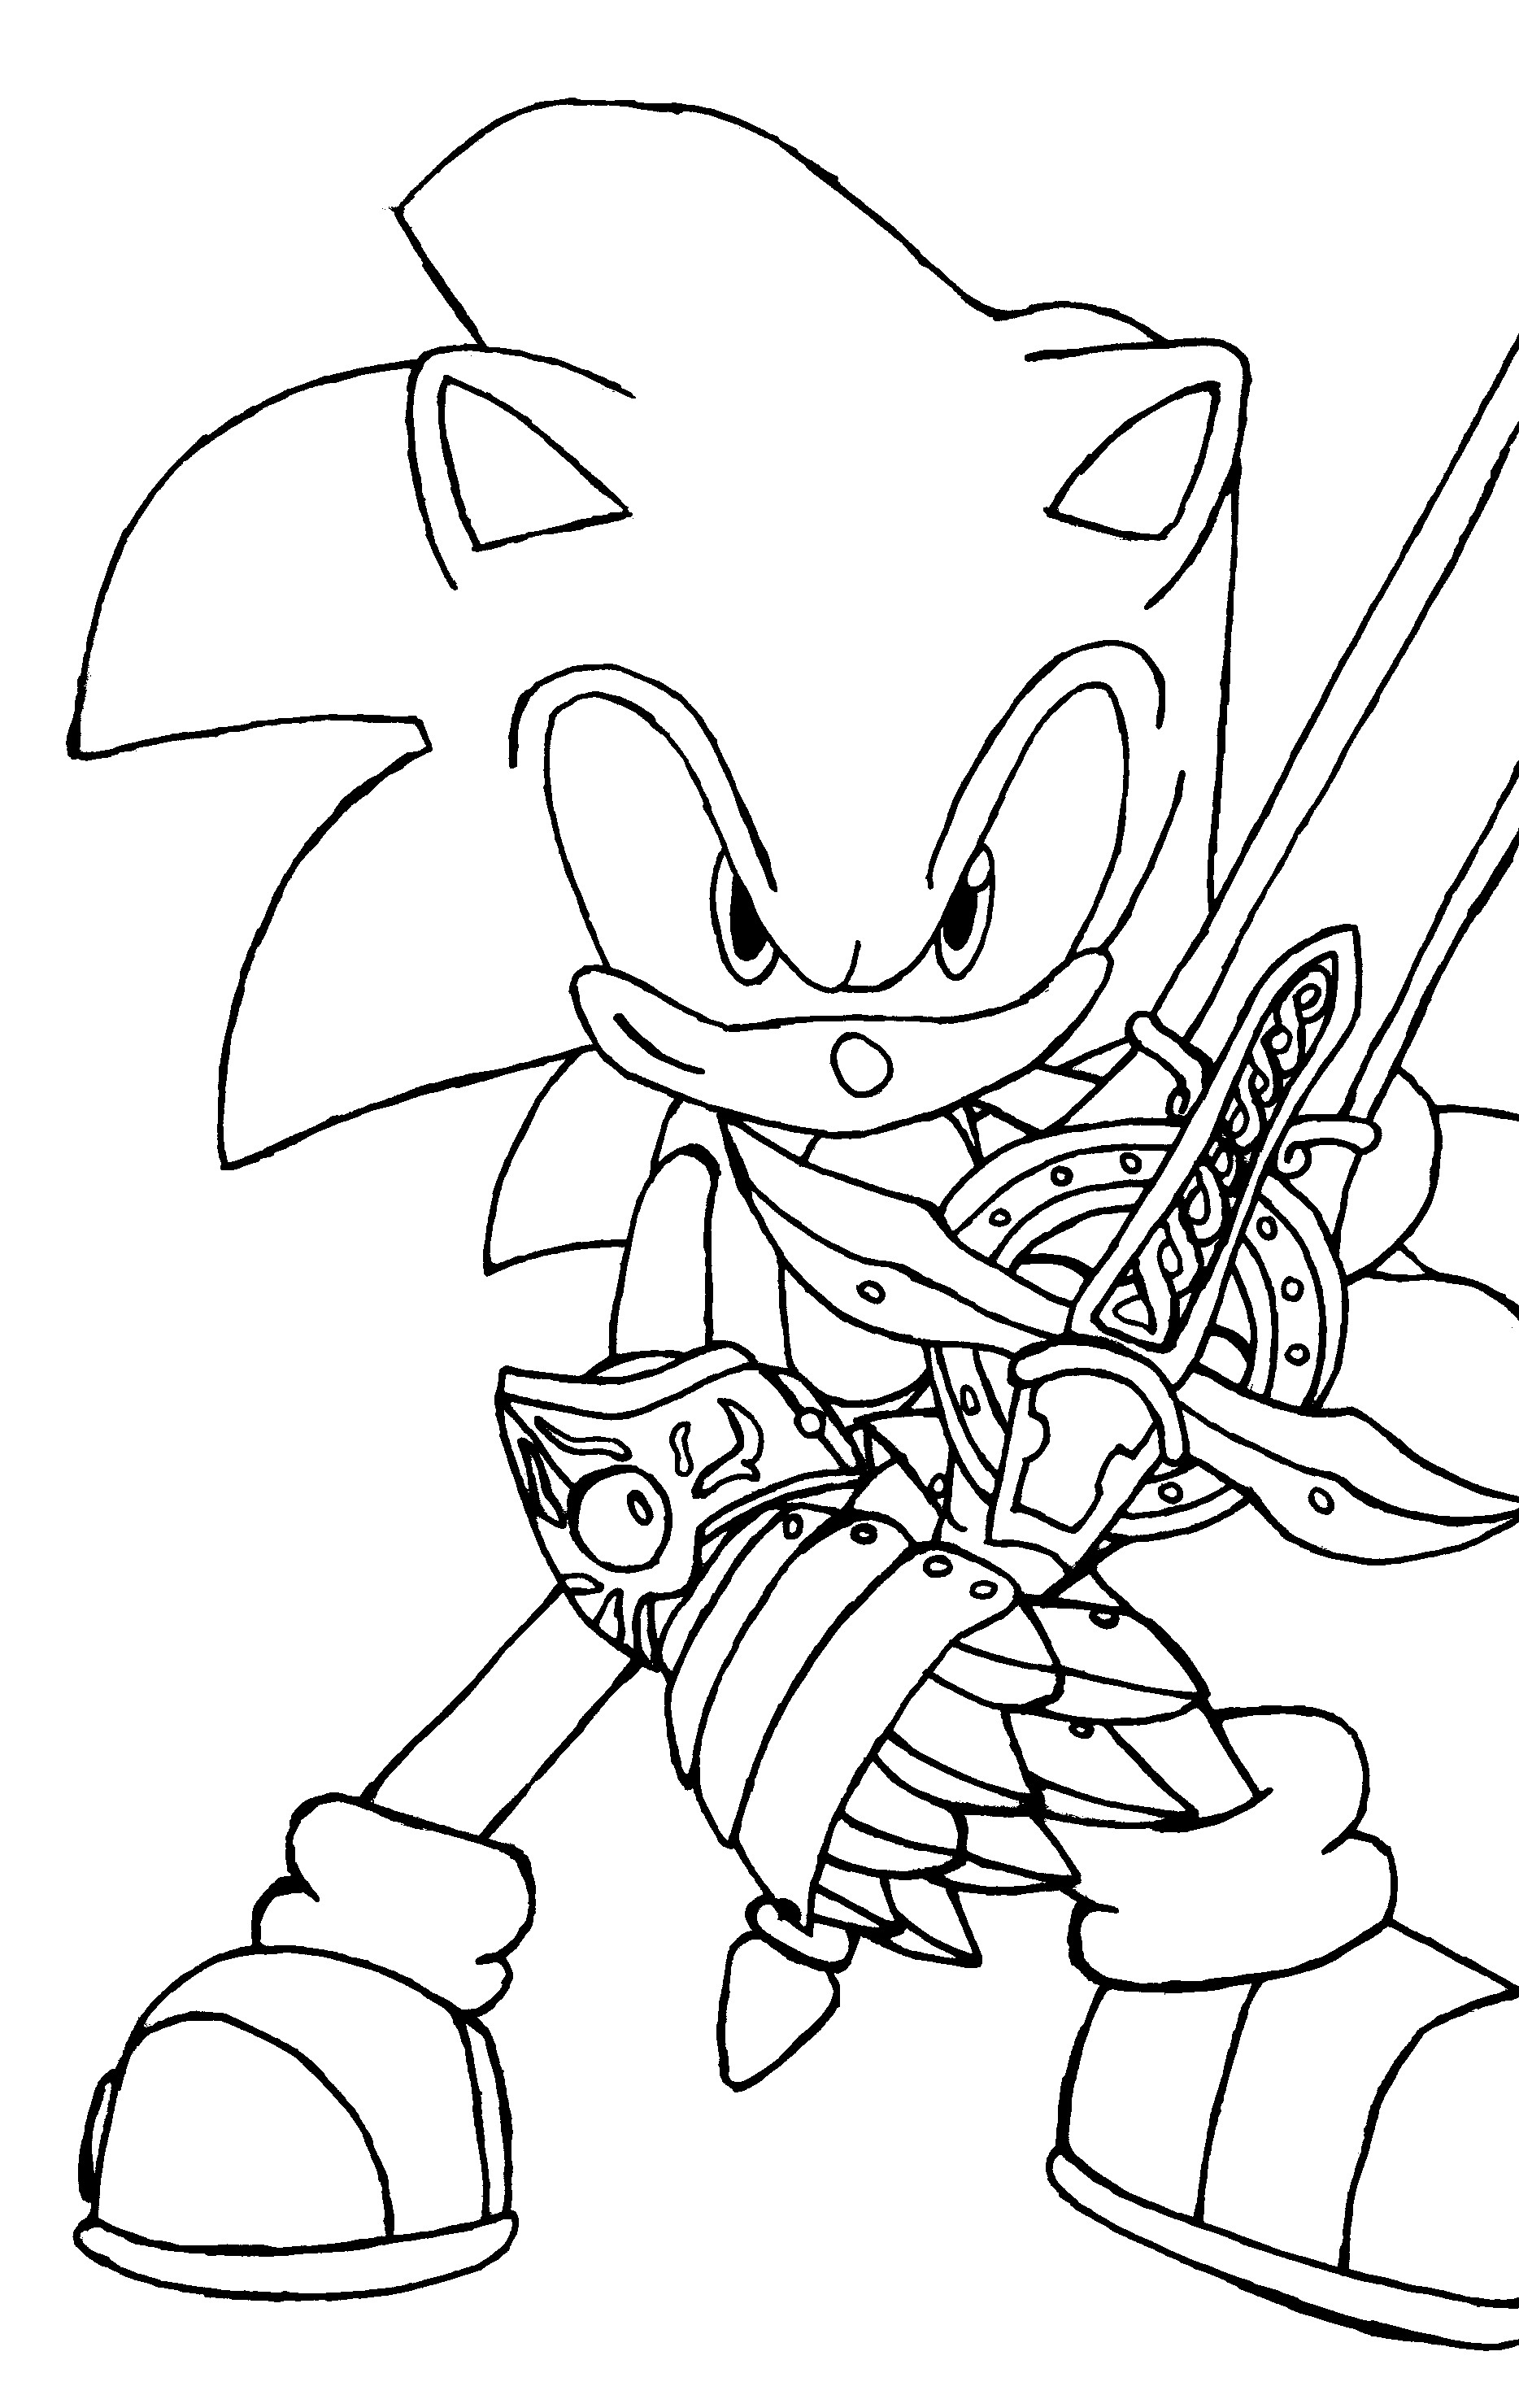 free sonic the hedgehog coloring pages free printable sonic the hedgehog coloring pages for kids